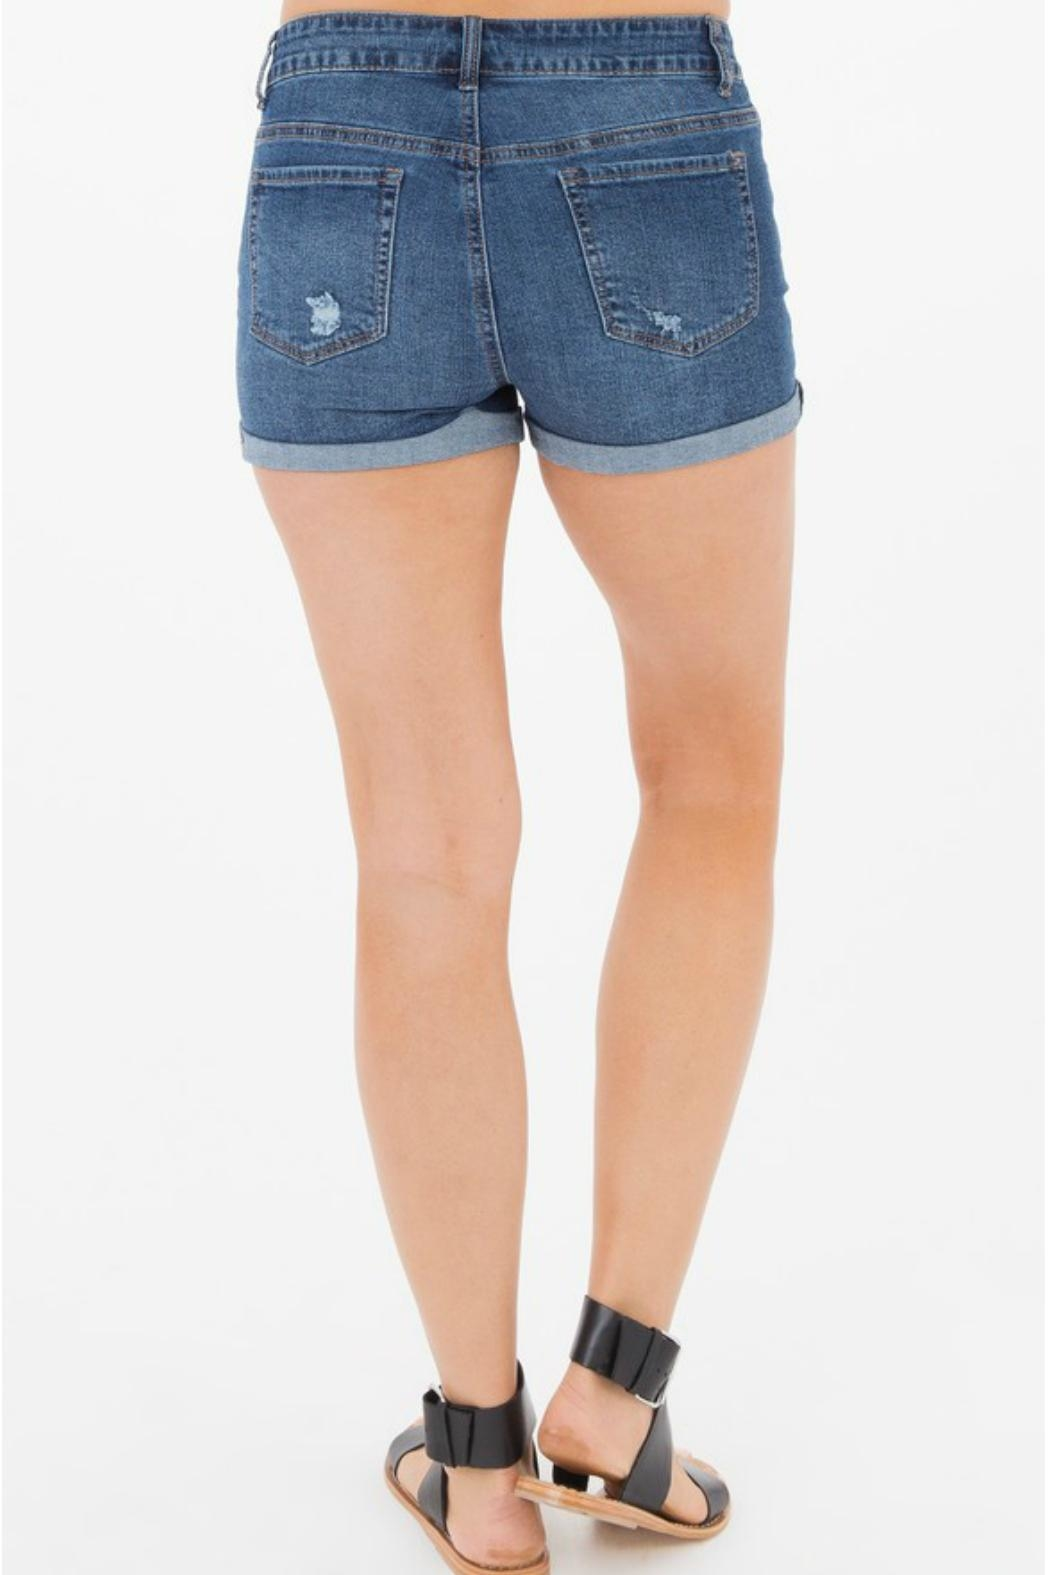 Others Follow  Cora Distressed Shorts - Side Cropped Image